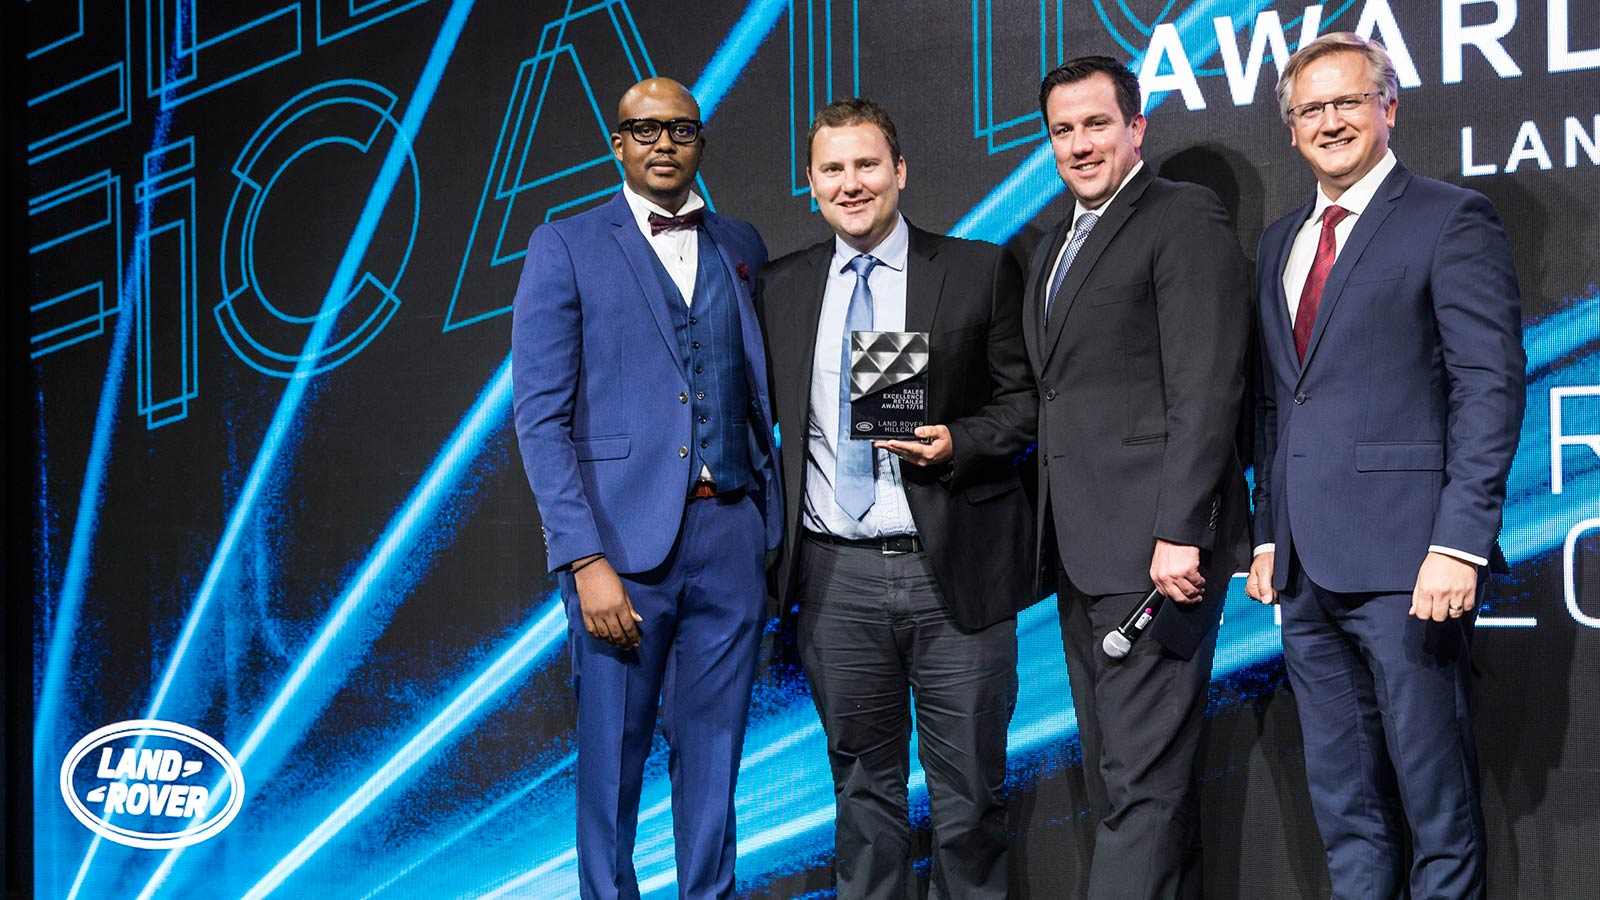 SALES RETAILER OF THE YEAR